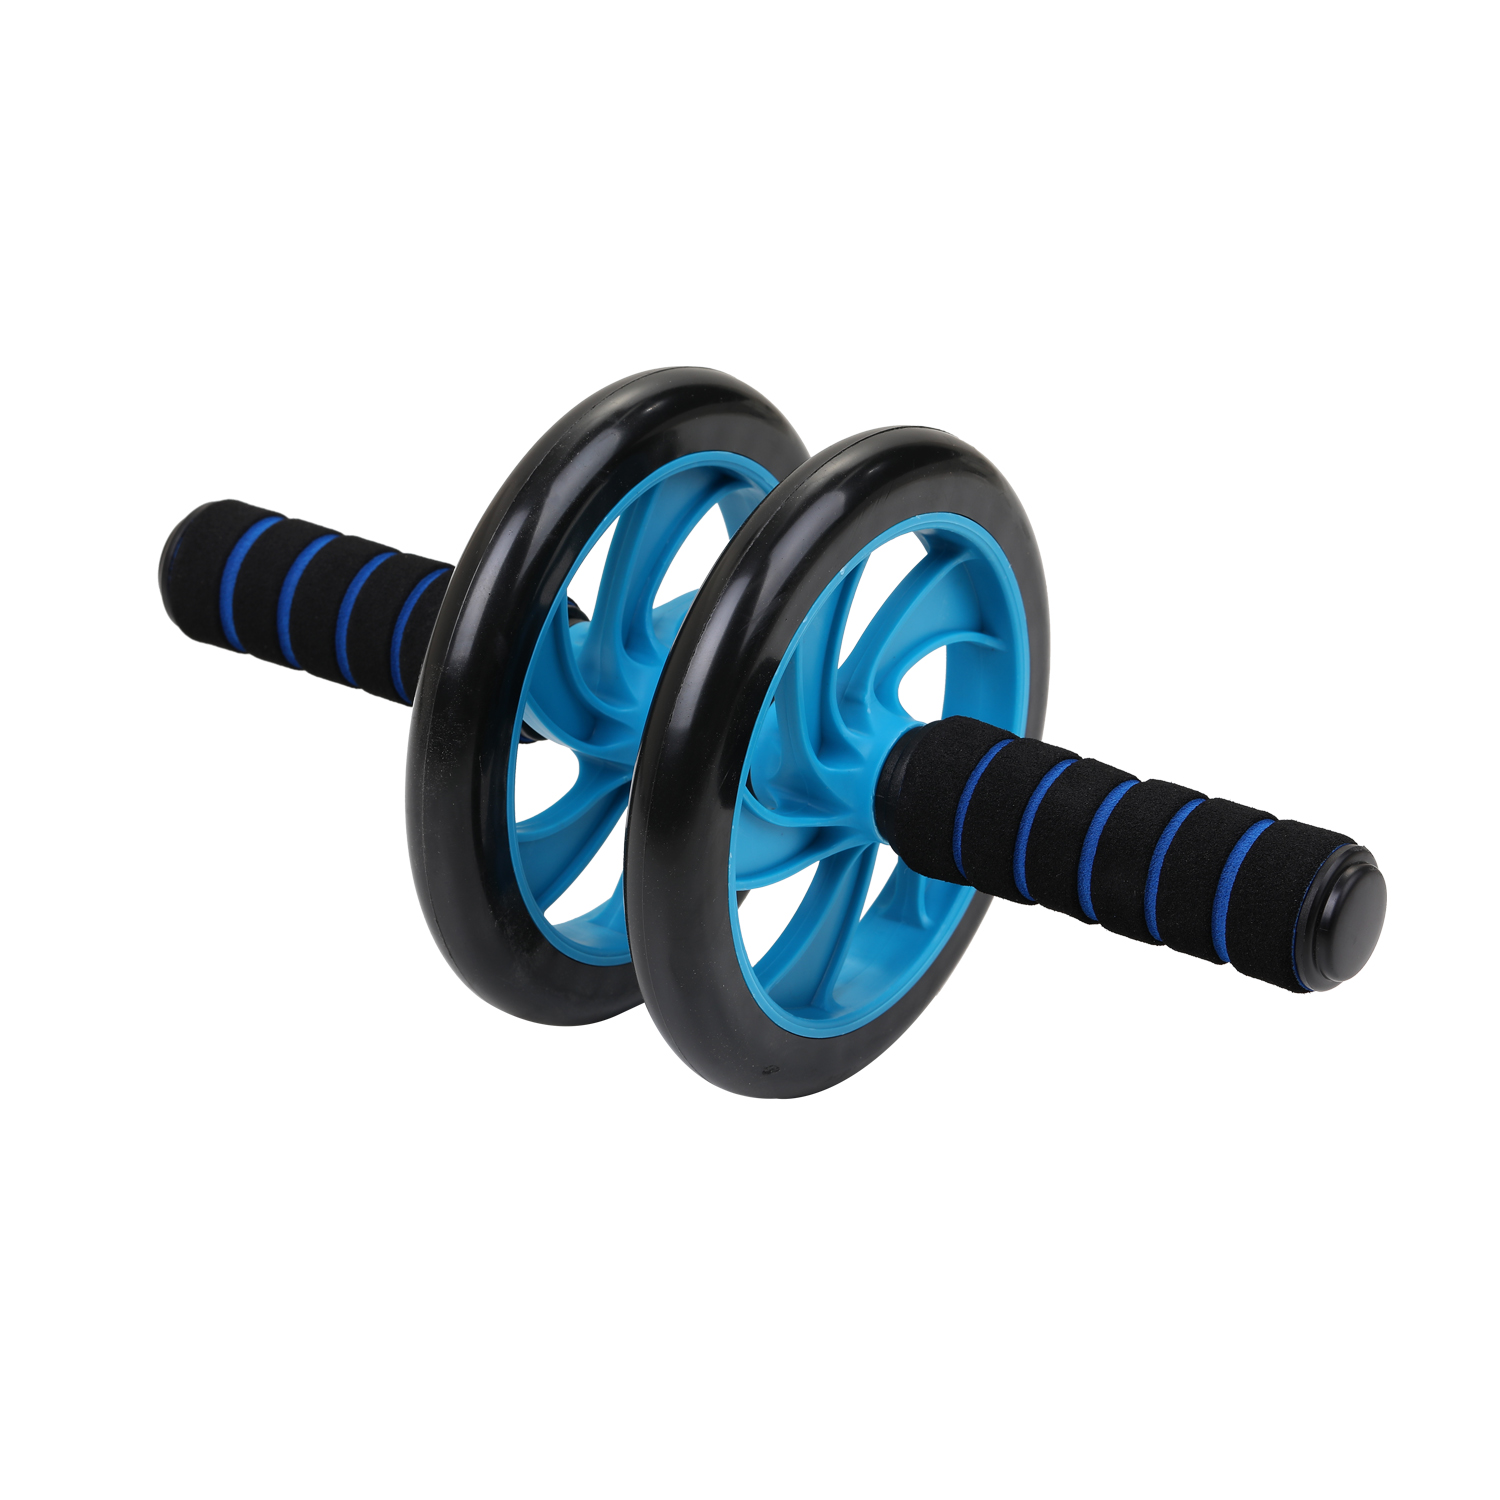 Hab81f7b14b2c4c4fa69e9a0ab5731f77C - 5-in-1 AB Roller Kit Abdominal Press Wheel Pro with Push-UP Bar Jump Rope Knee Pad Gym Home Exercise  Fitness Equipment